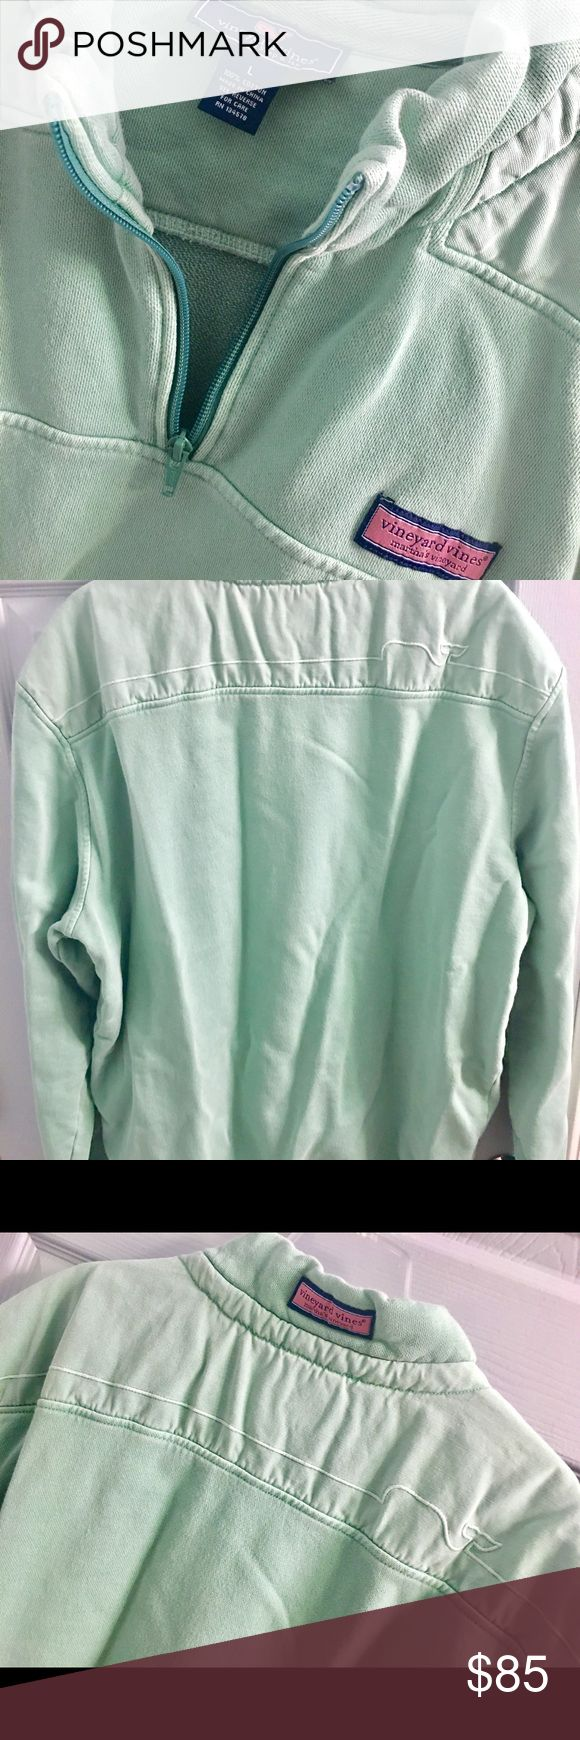 Vineyard Vines Mens Pullover Jacket Large LIKE NEW Vineyard Vines Mens Shep Shirt 1/4 Zip Pullover Jacket. Size Large. Excellent, Like New condition. Vineyard Vines Shirts Sweatshirts & Hoodies